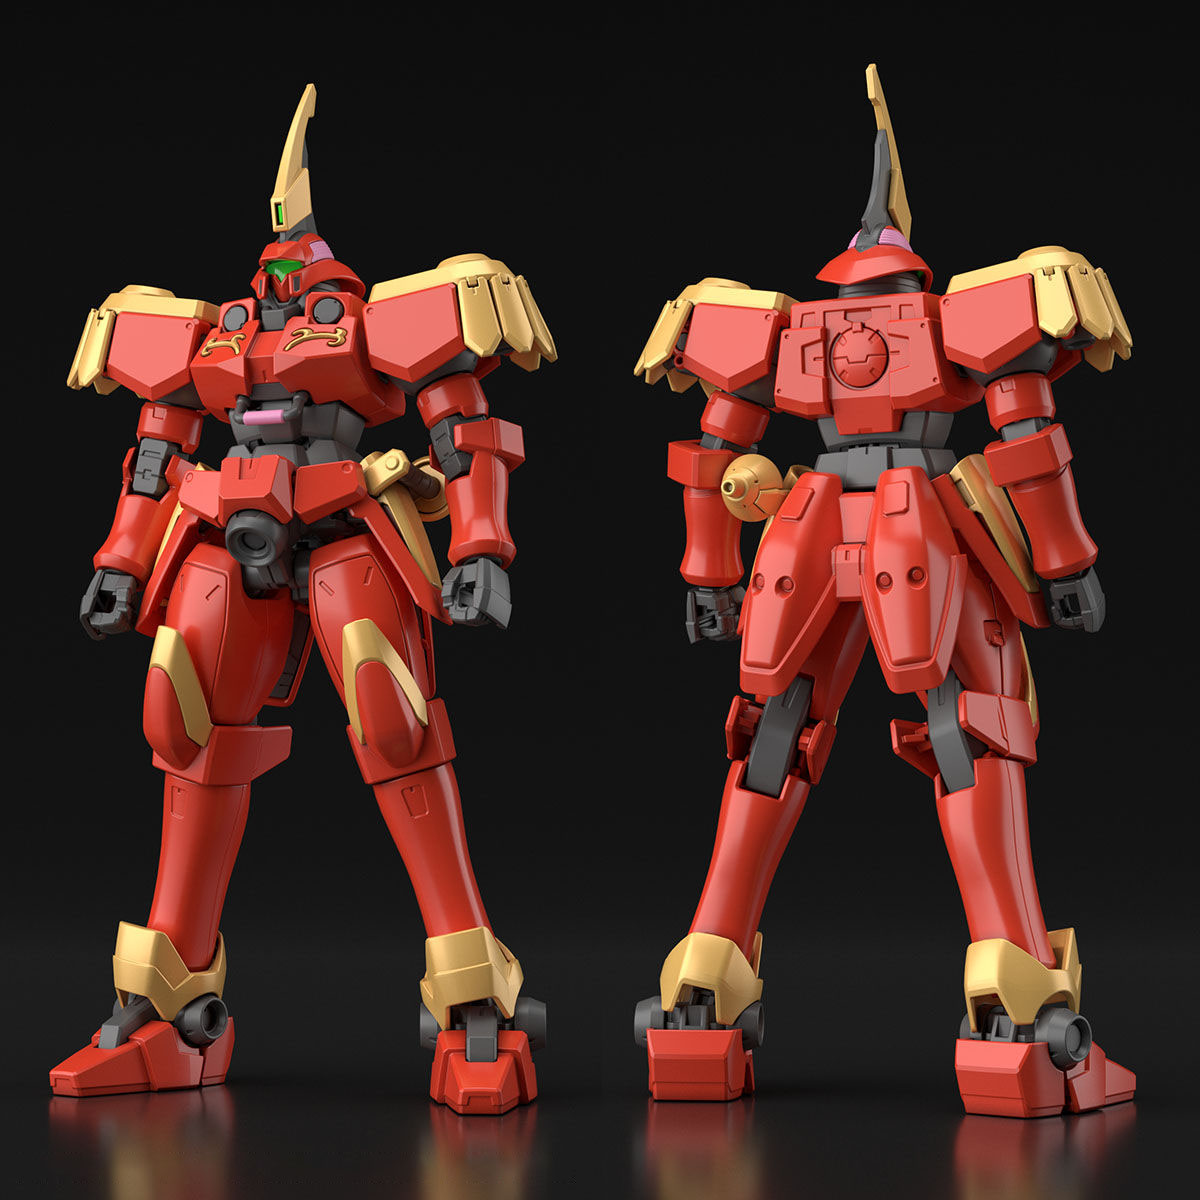 HG 1/144 LEO-S [Oct 2021 Delivery]